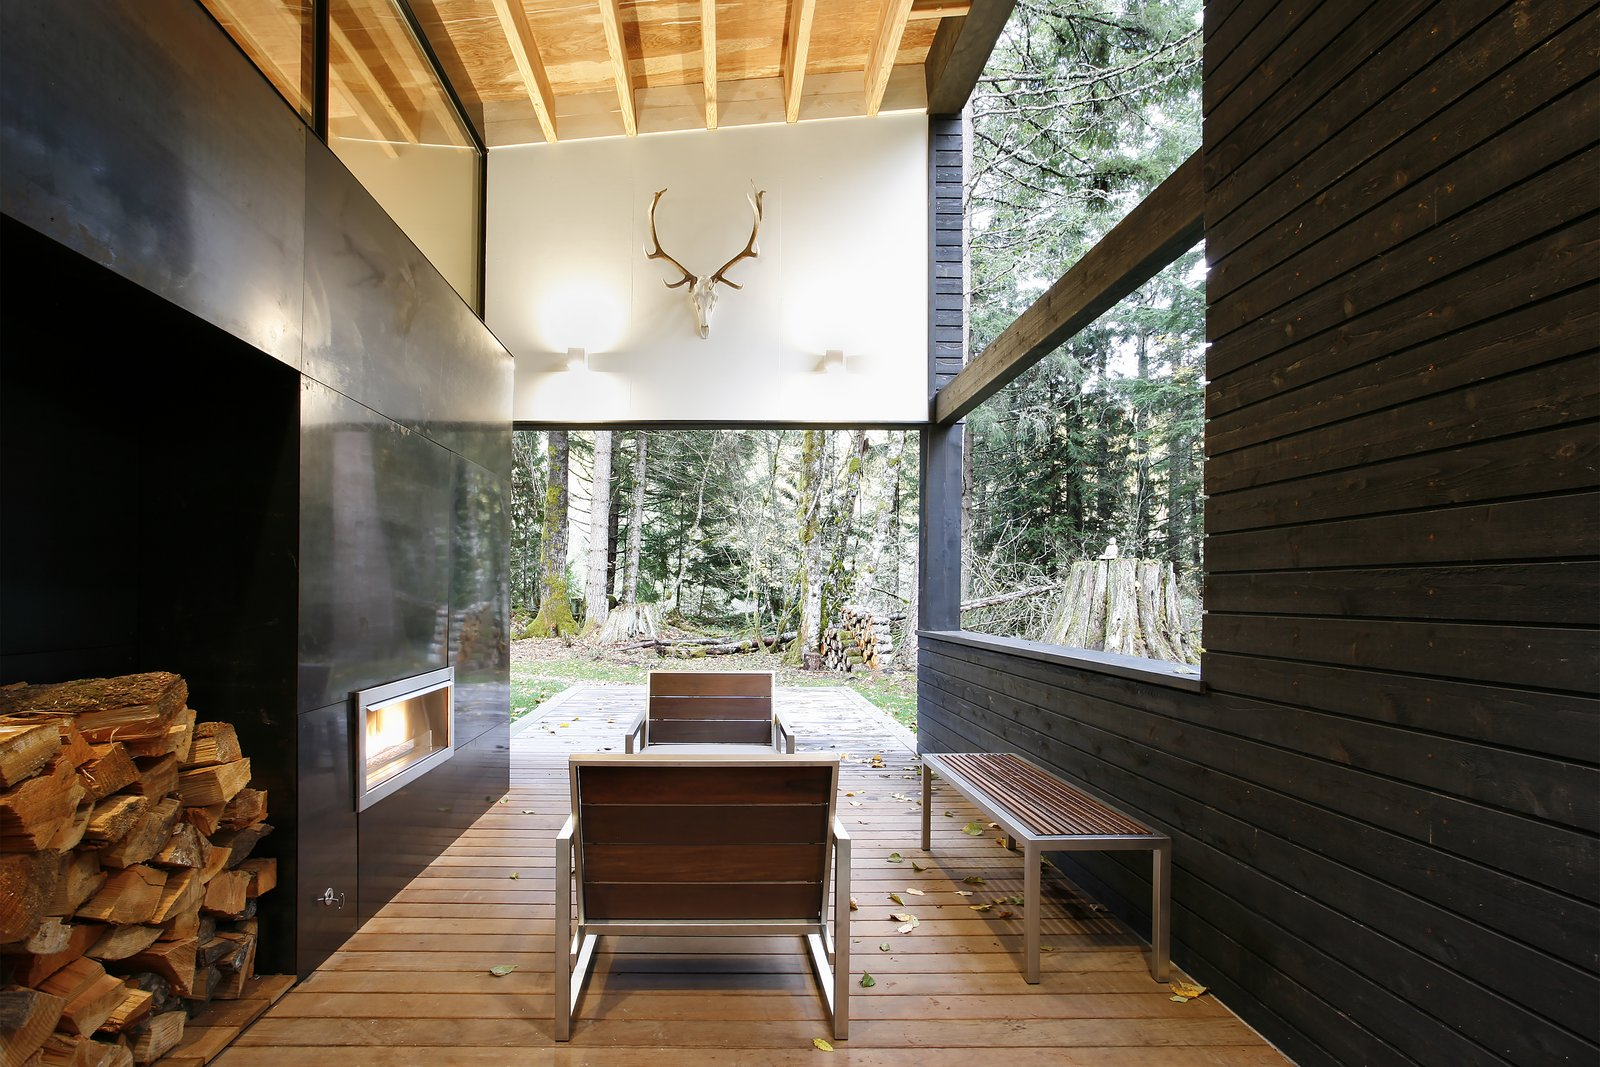 Outdoor and Wood Patio, Porch, Deck  Courtyard House on a River by Robert Hutchison Architecture